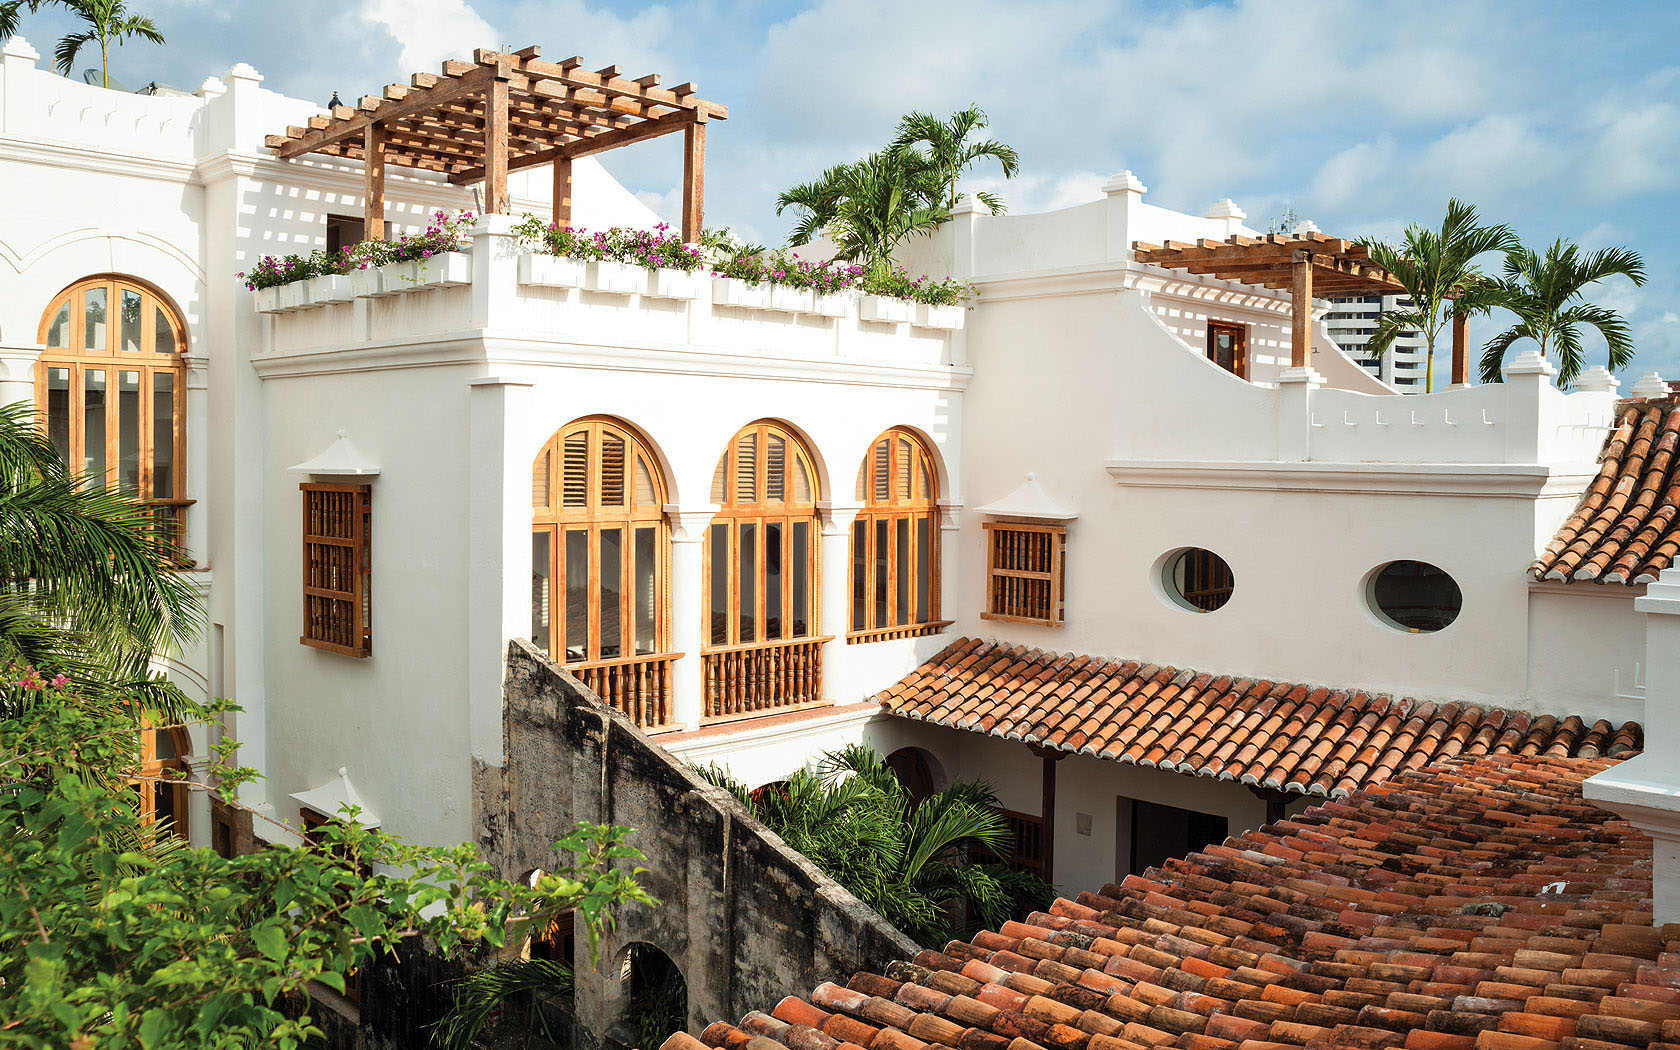 Hotel Casa San Agustin Spanish Colonial Architercture